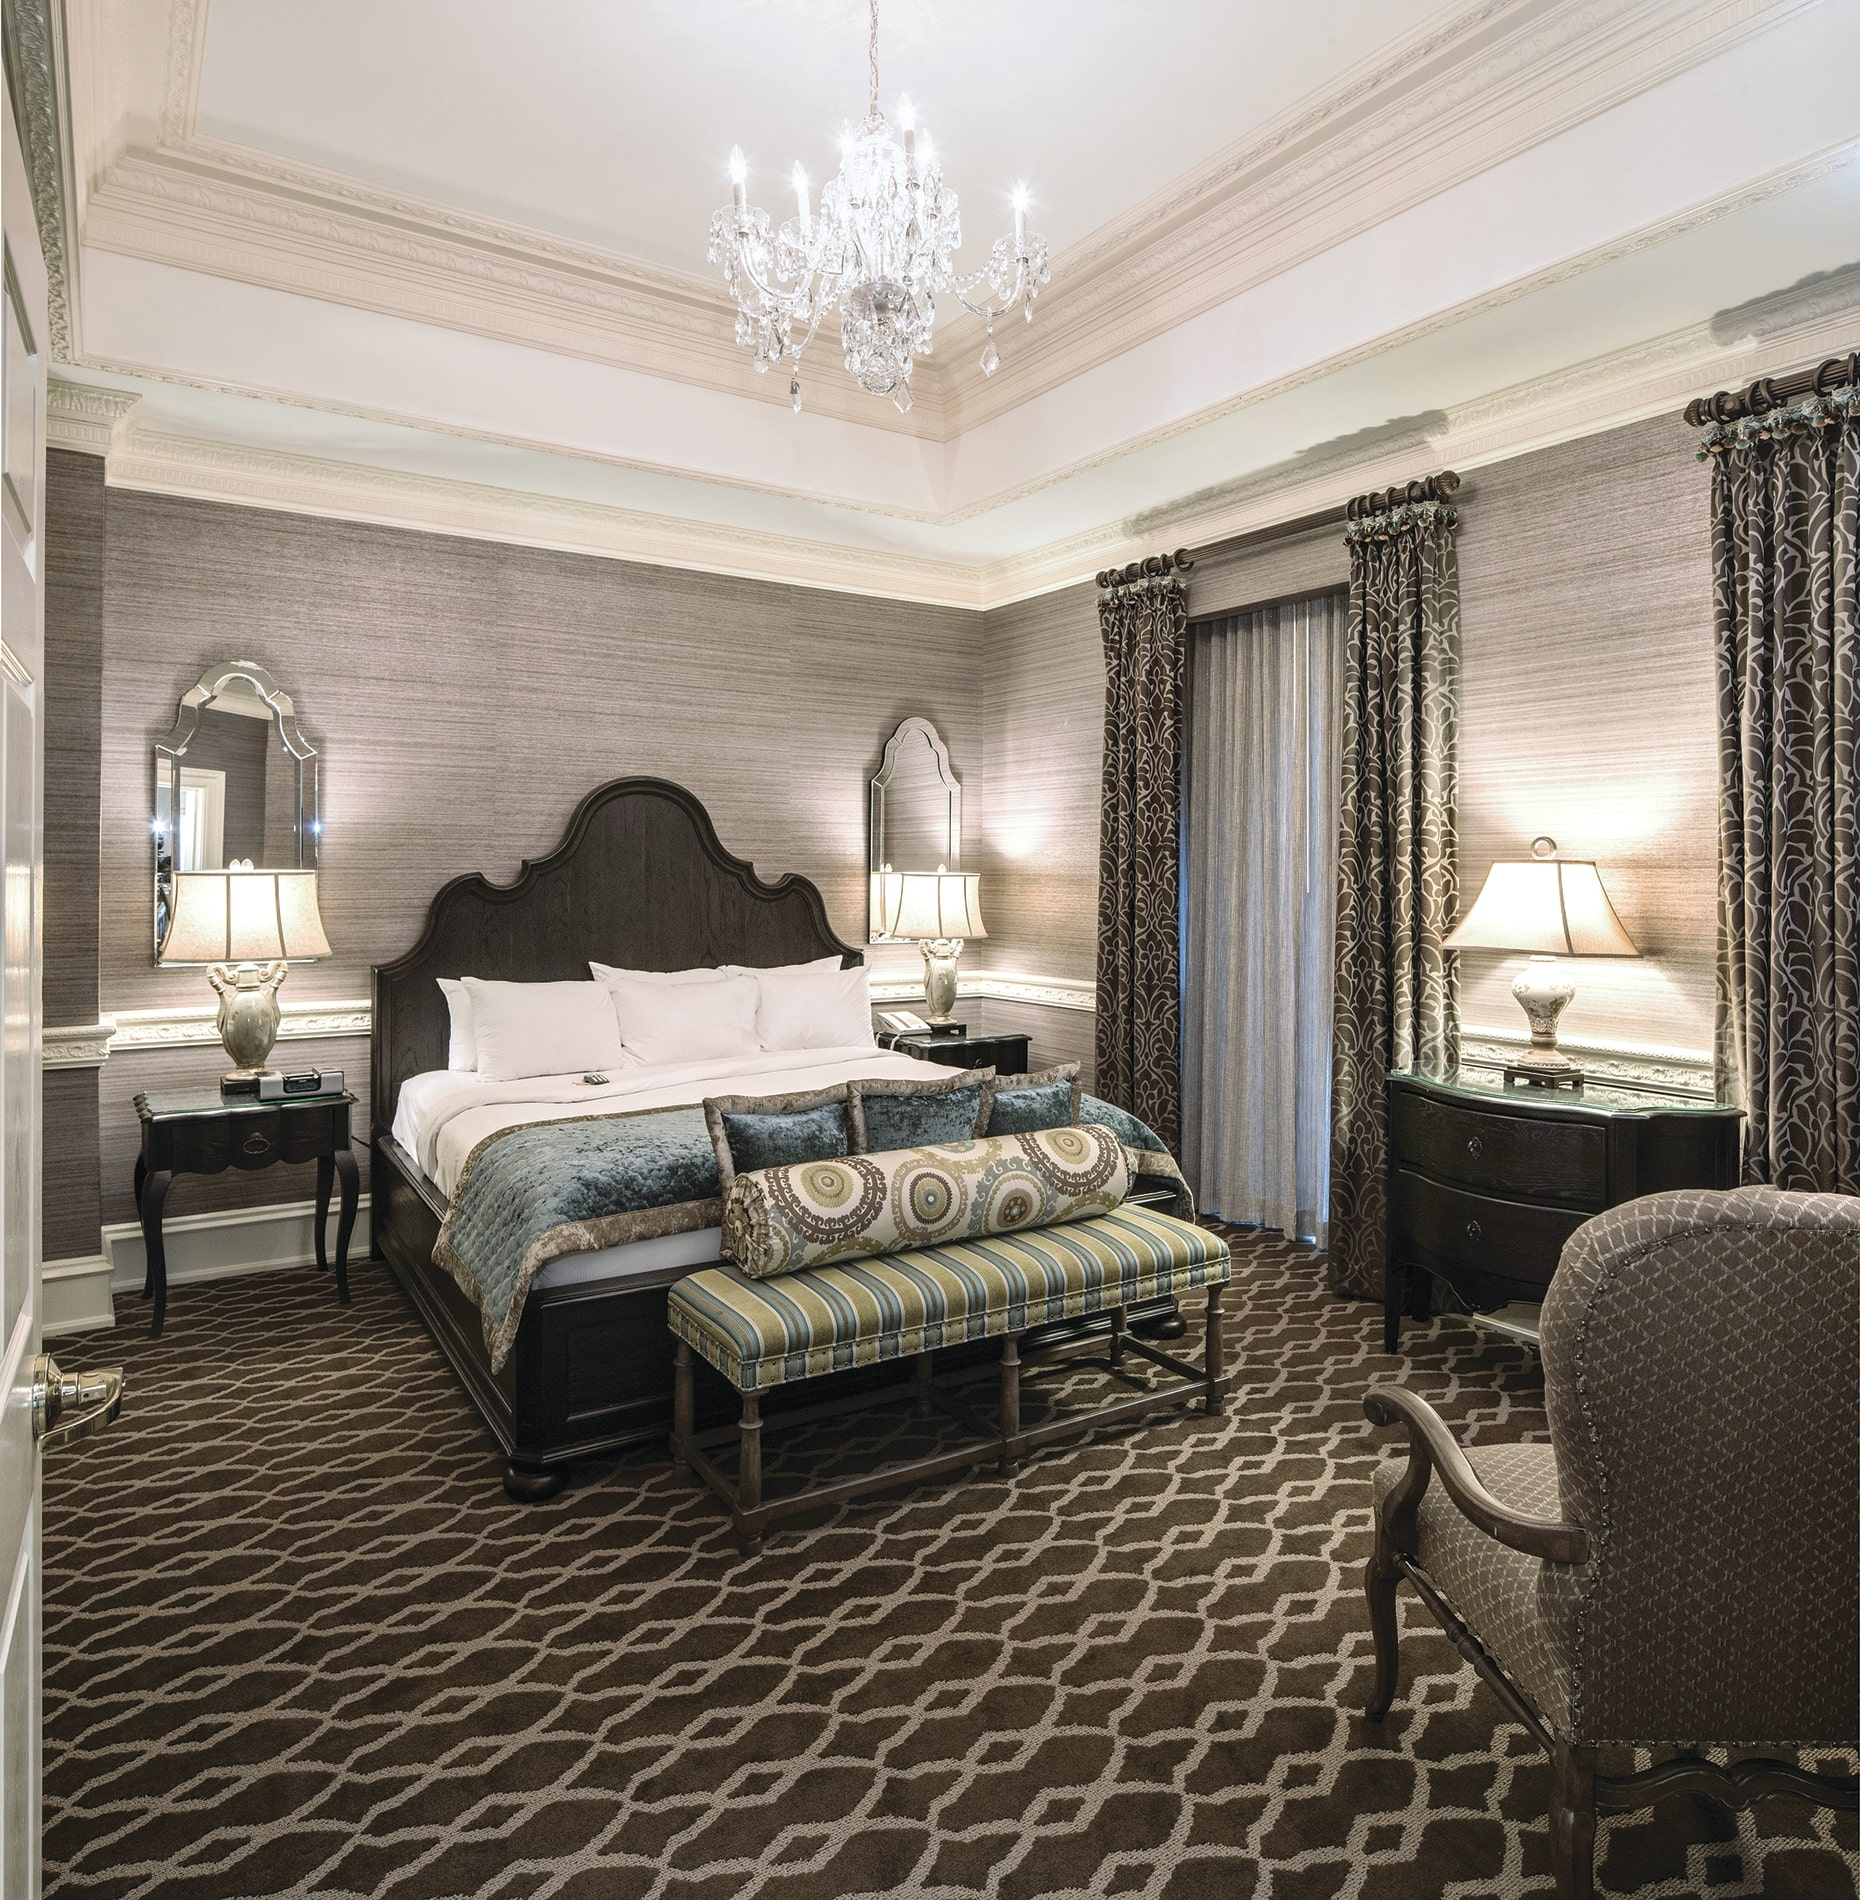 Chateau_Lafayette-Presidential_Suite_Master_Bedroom_cmyk_l.jpg